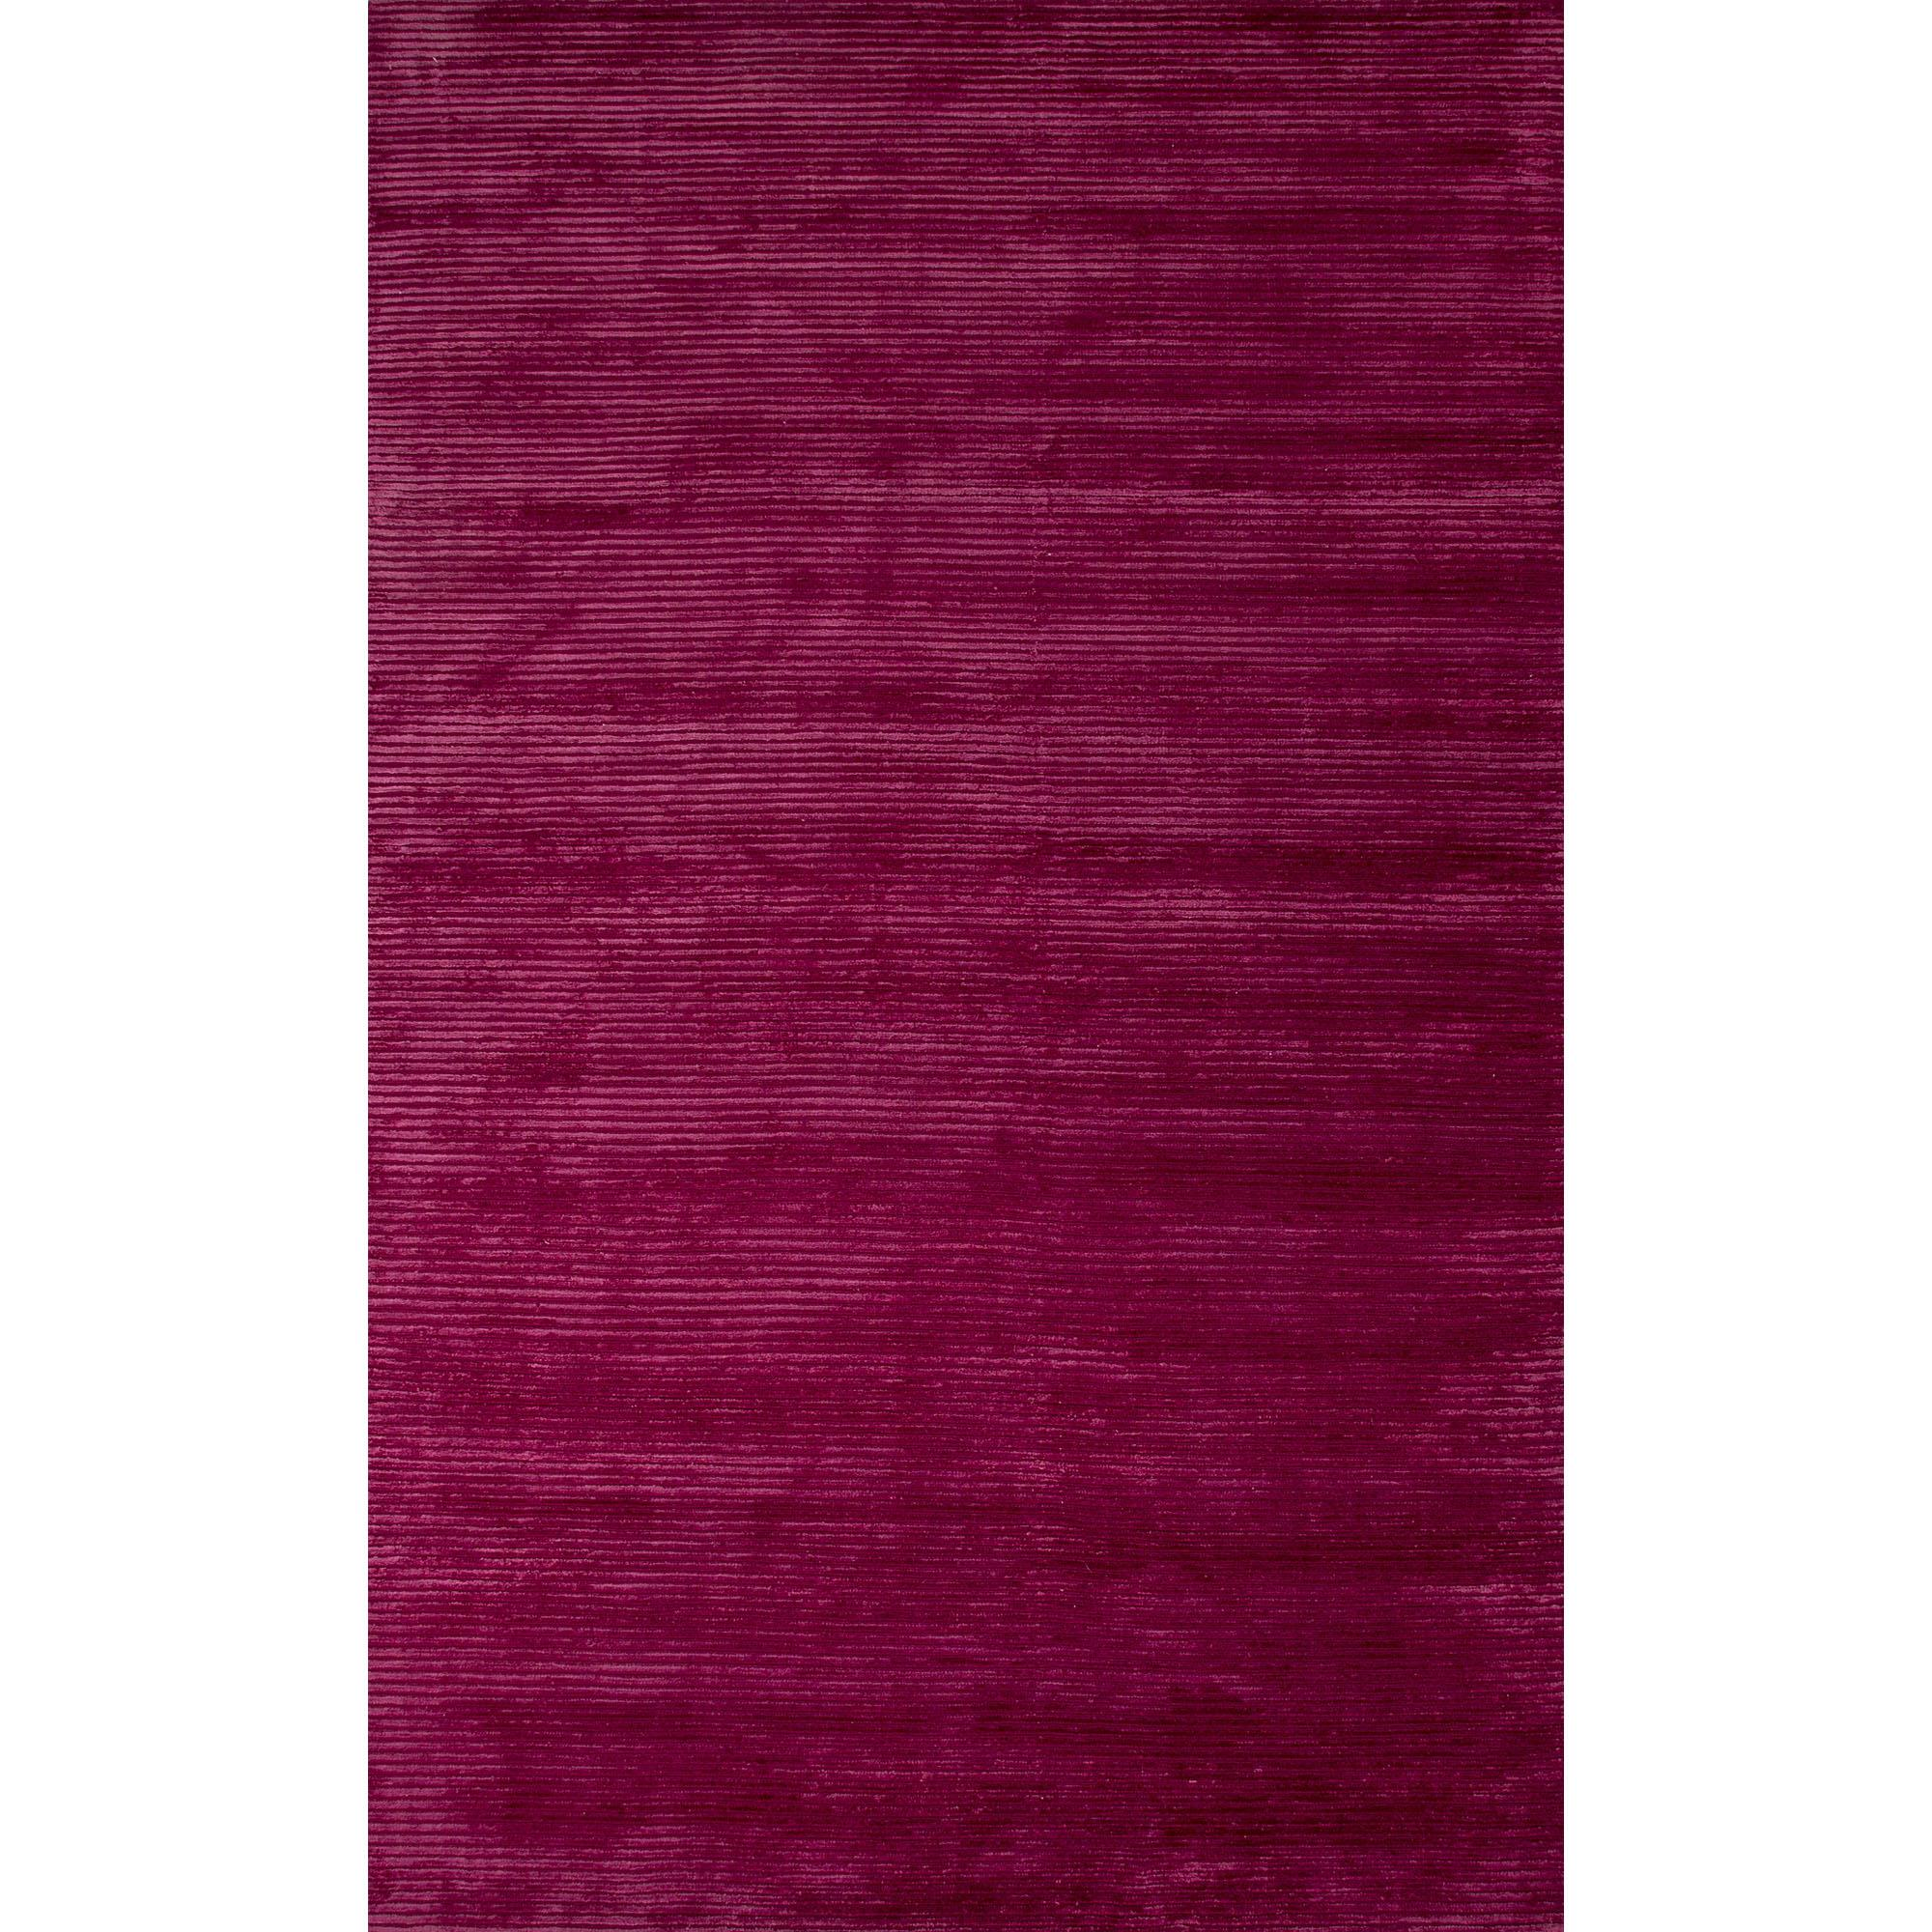 JAIPUR Rugs Basis 9 x 12 Rug - Item Number: RUG124650